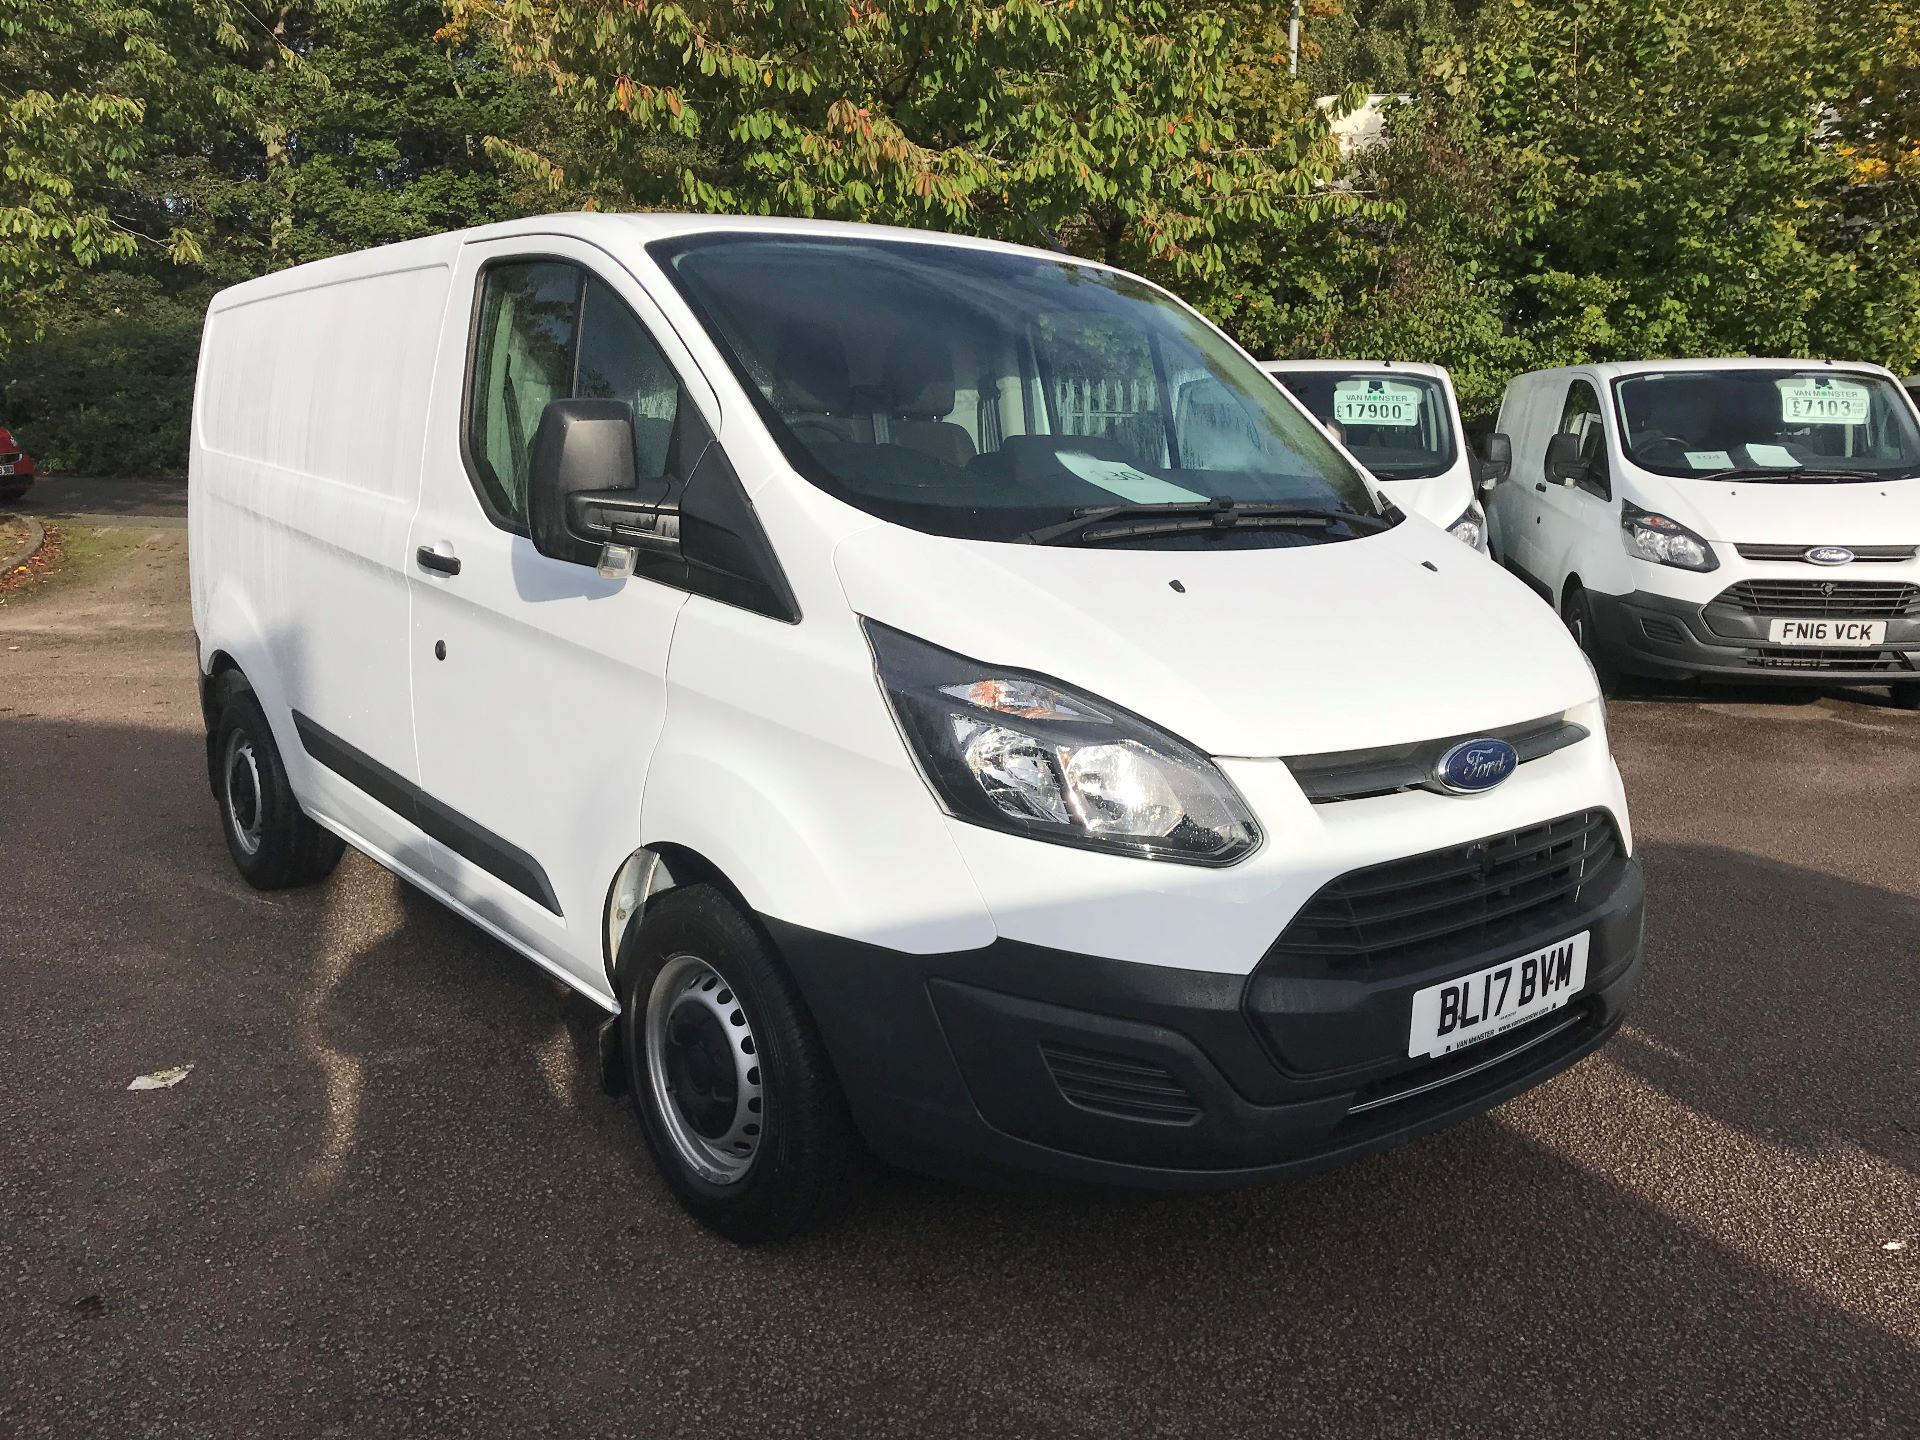 2017 Ford Transit Custom  290 L1 DIESEL FWD 2.0 TDCI 105PS LOW ROOF VAN EURO 6 (BL17BVM)